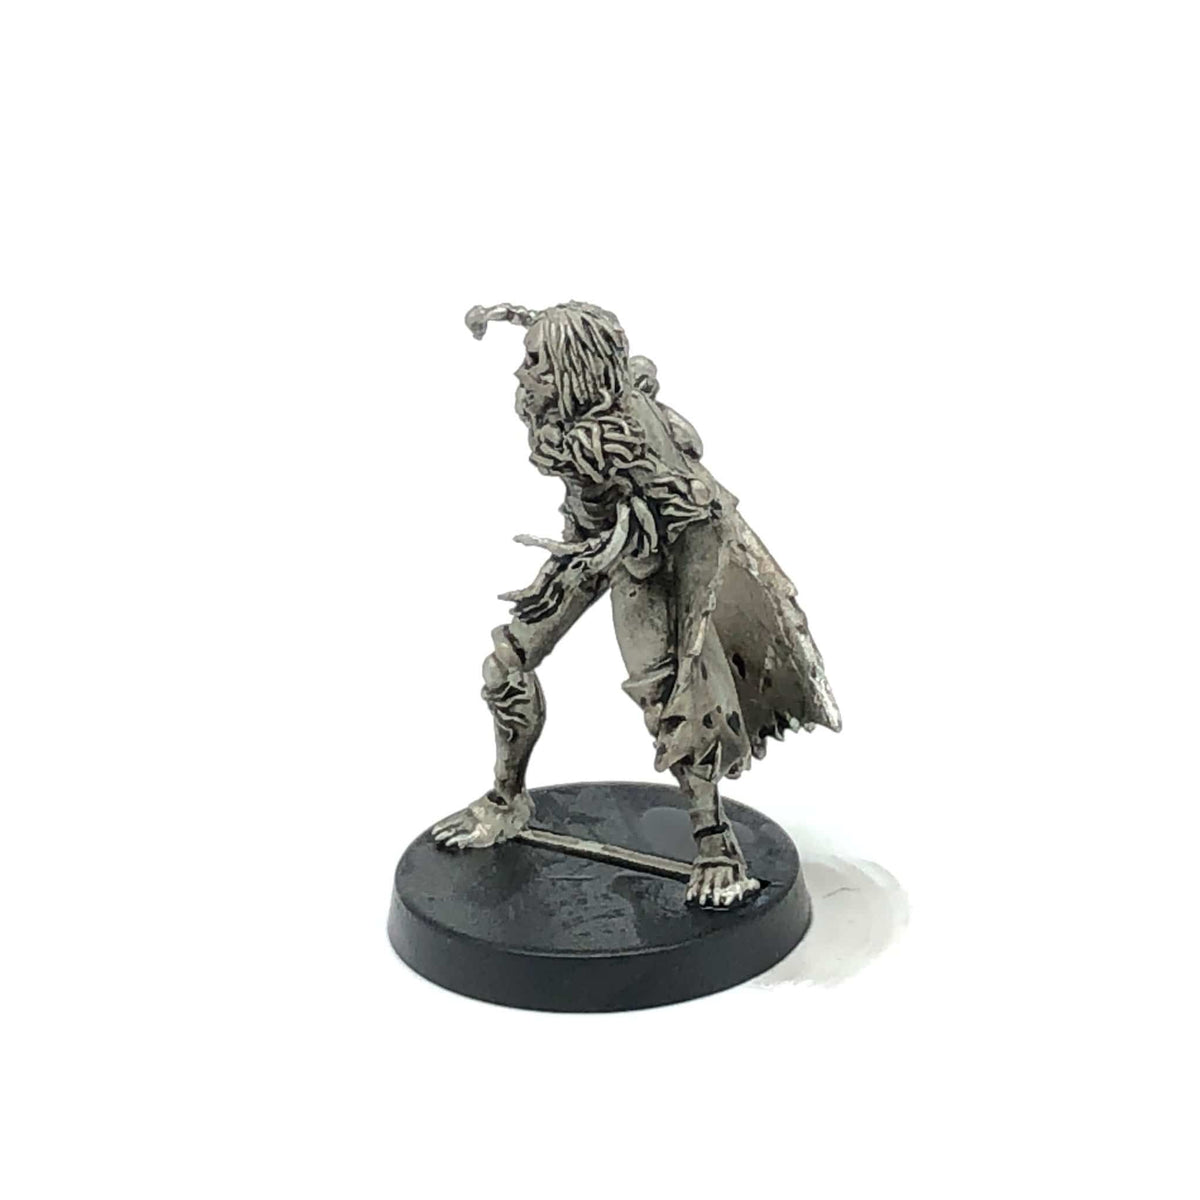 Bedlem Bear Miniatures Miniature Sisters of Death Witch Elves Wights